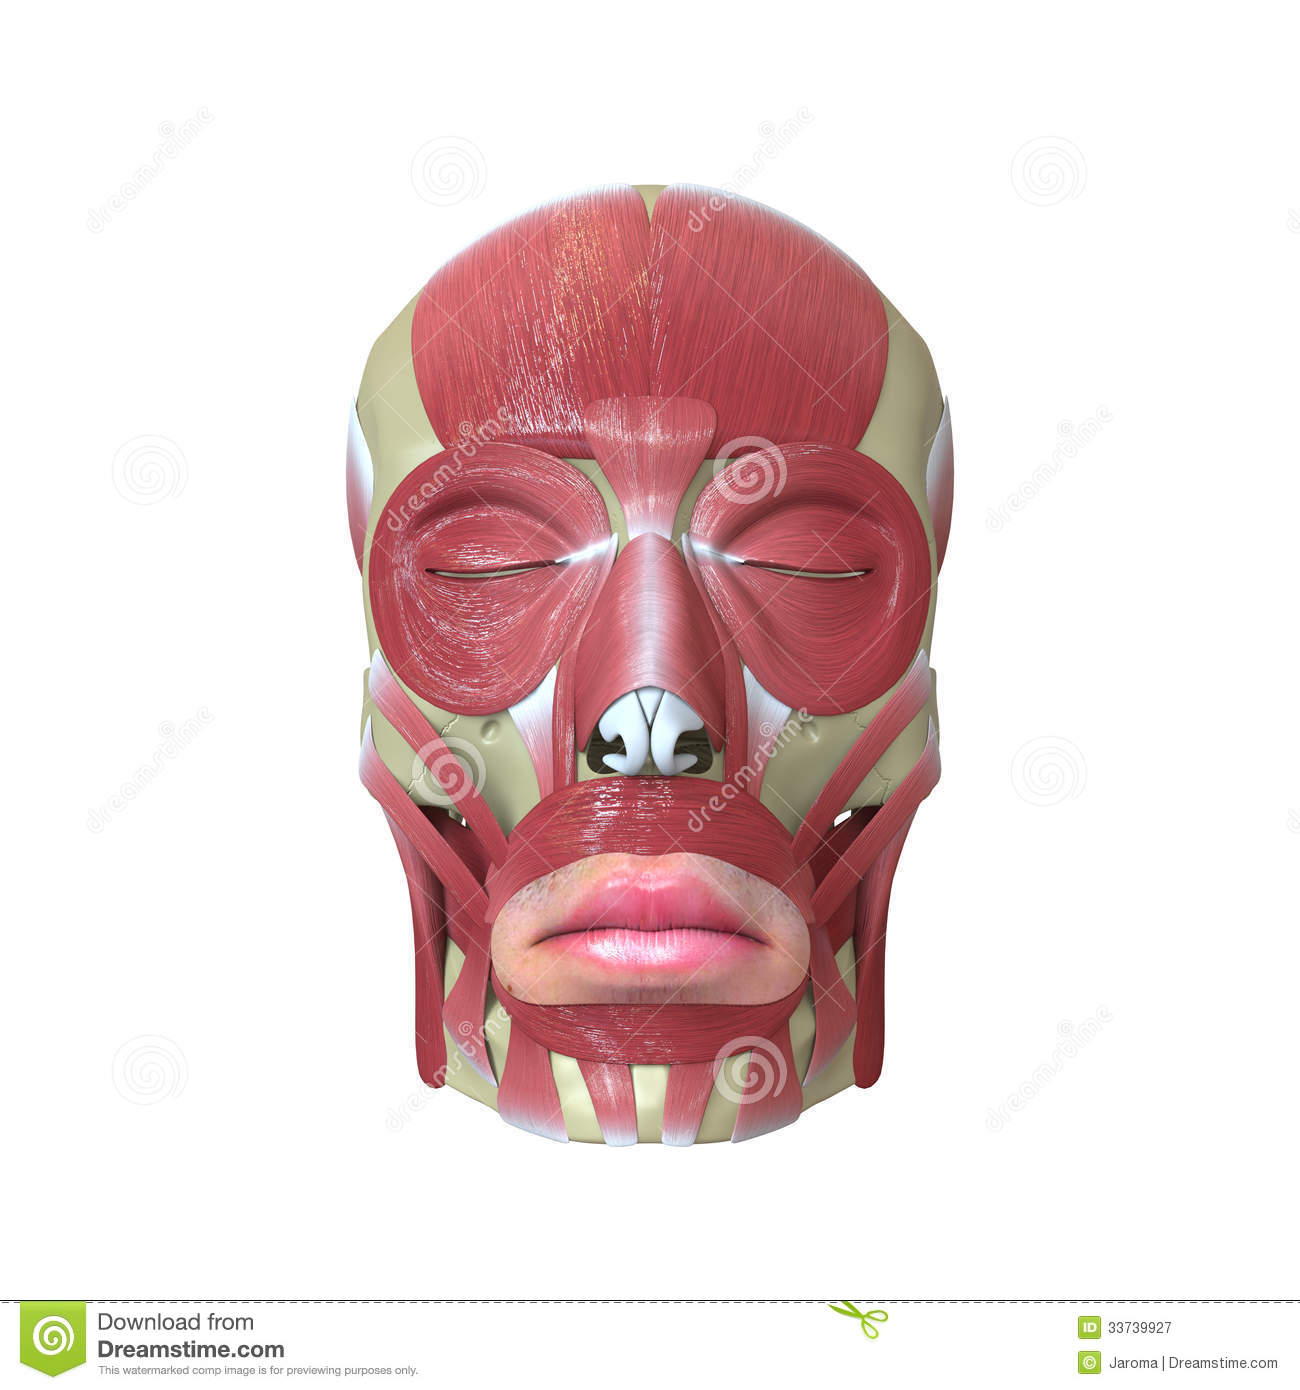 Anemone moreover Rendered Human Skull Muscles White Background moreover Over Exercising additionally Mei Xiao Skin Condition likewise Humantorch Mu. on muscles all over body